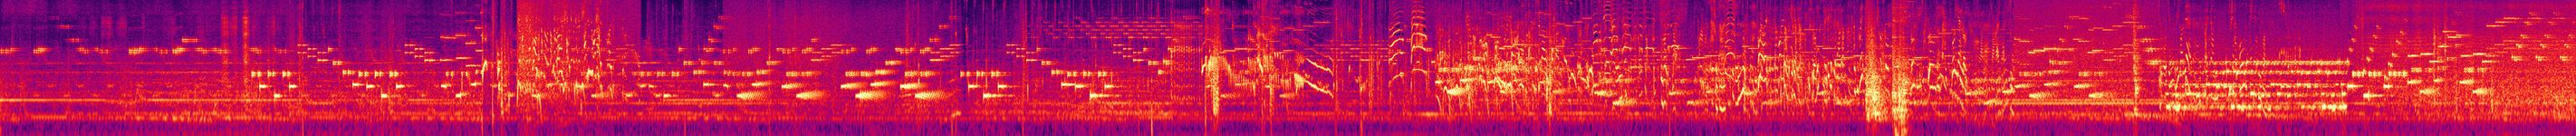 Work Is A Four Letter Word - 9 - Spectrogram.jpg